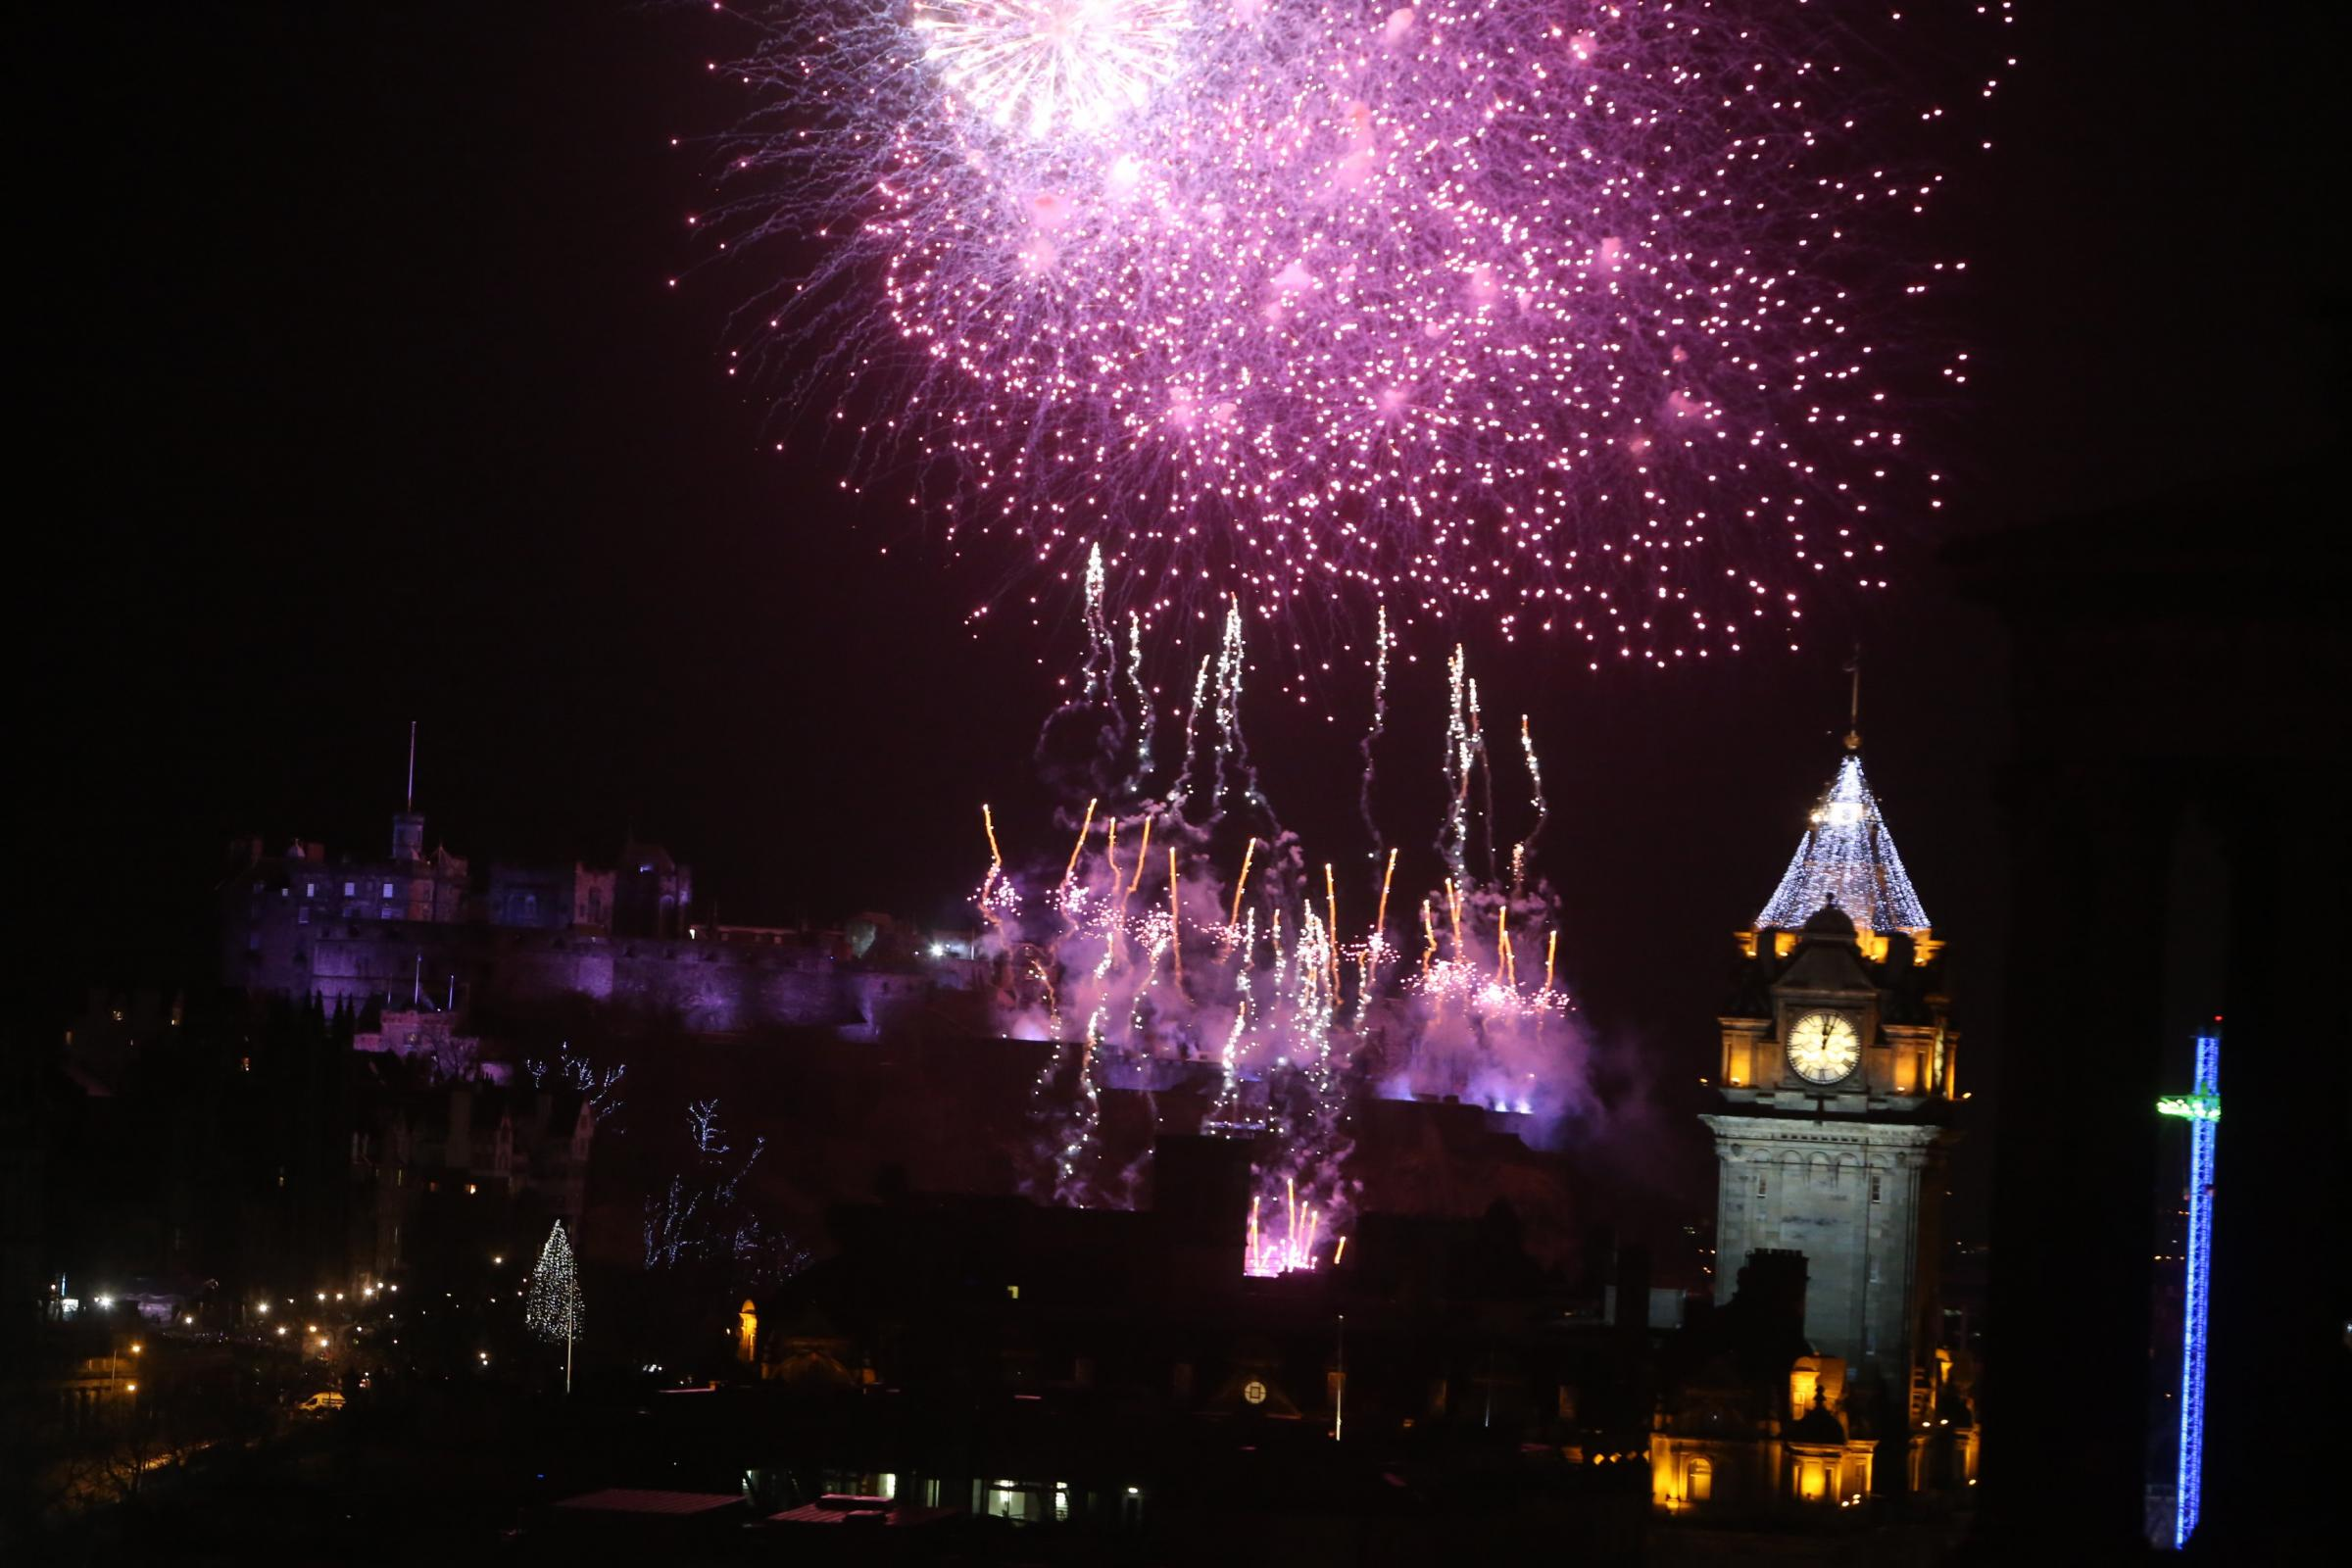 Former SNP minister Kenny MacAskill has called for a tourist tax to help fund events like Edinburgh's Hogmanay celebrations